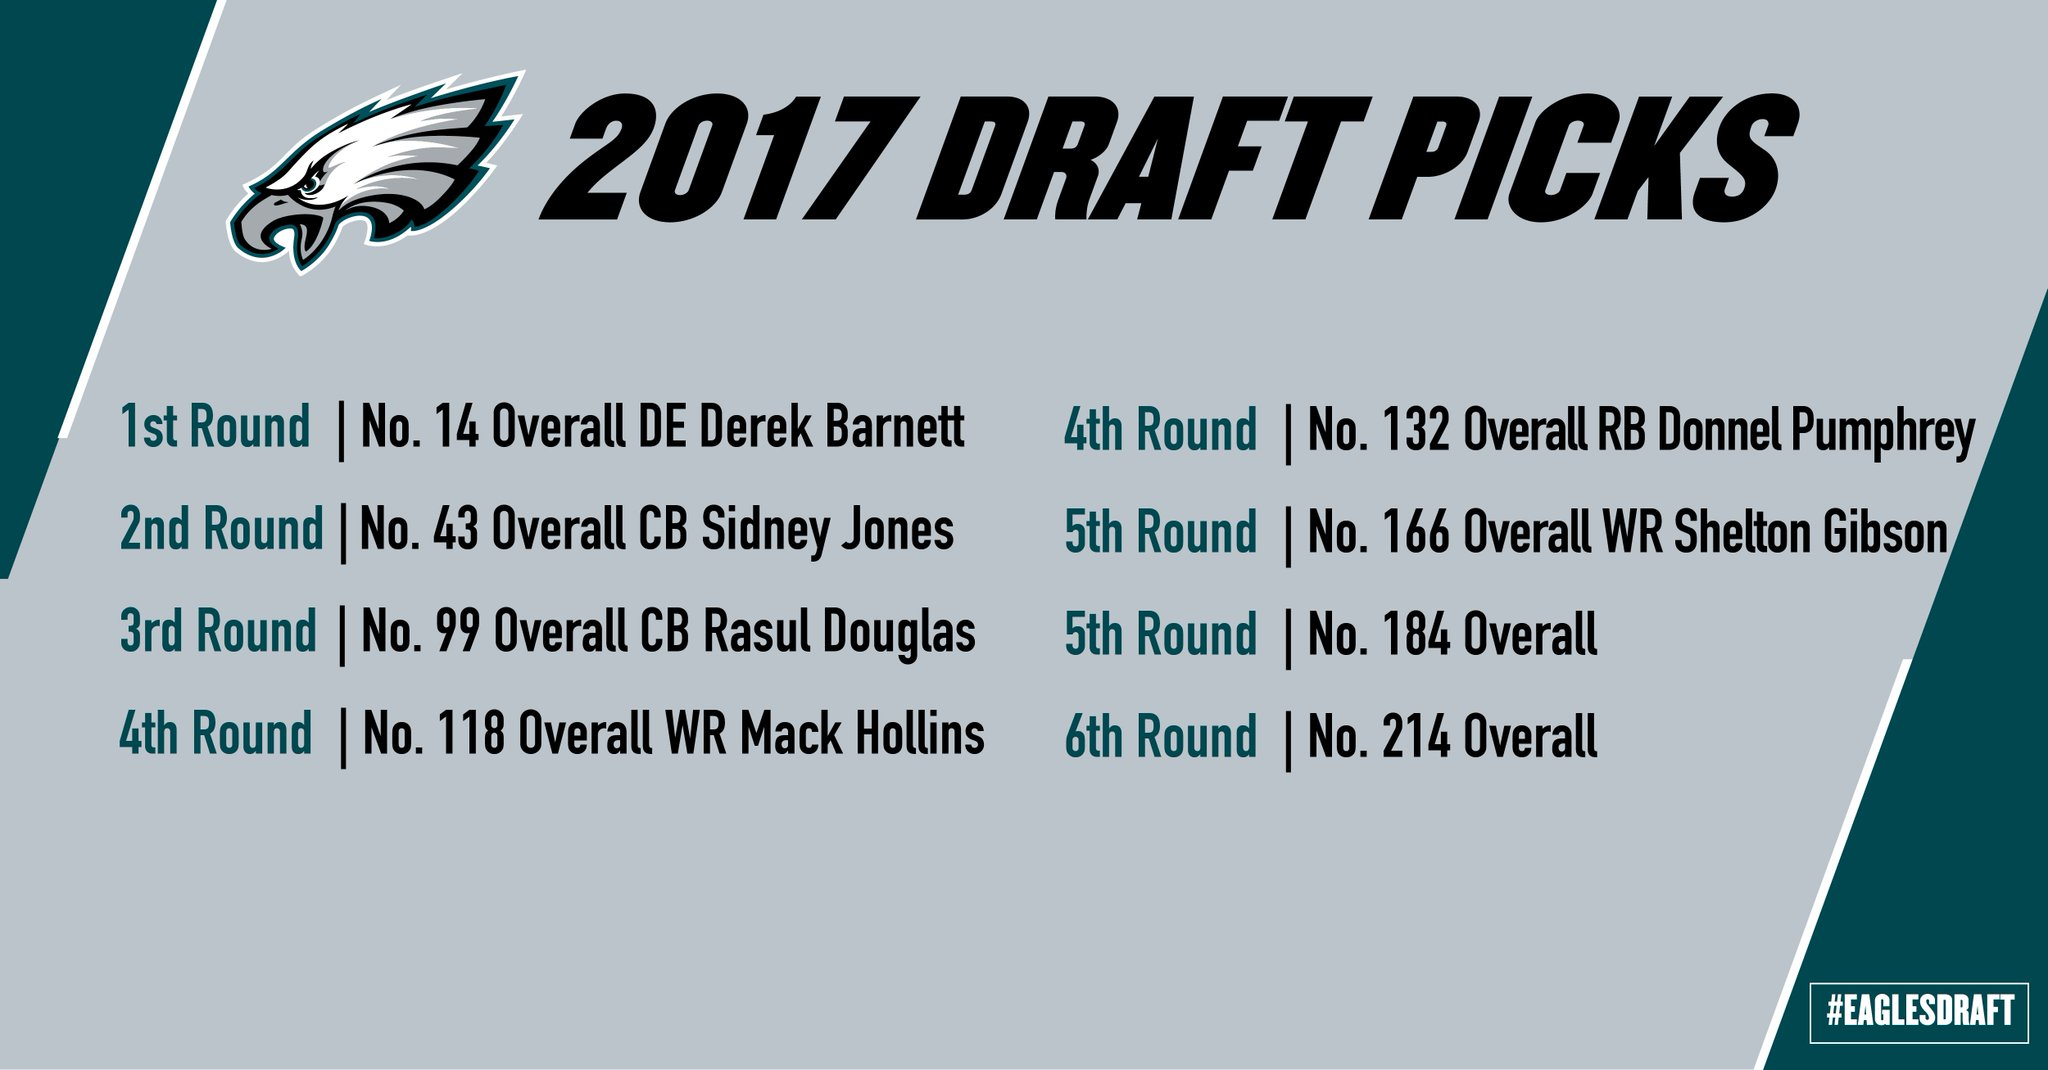 Alright so now that dust has settled on all those trades, here's an #EaglesDraft recap: https://t.co/sxyf8P7hcB